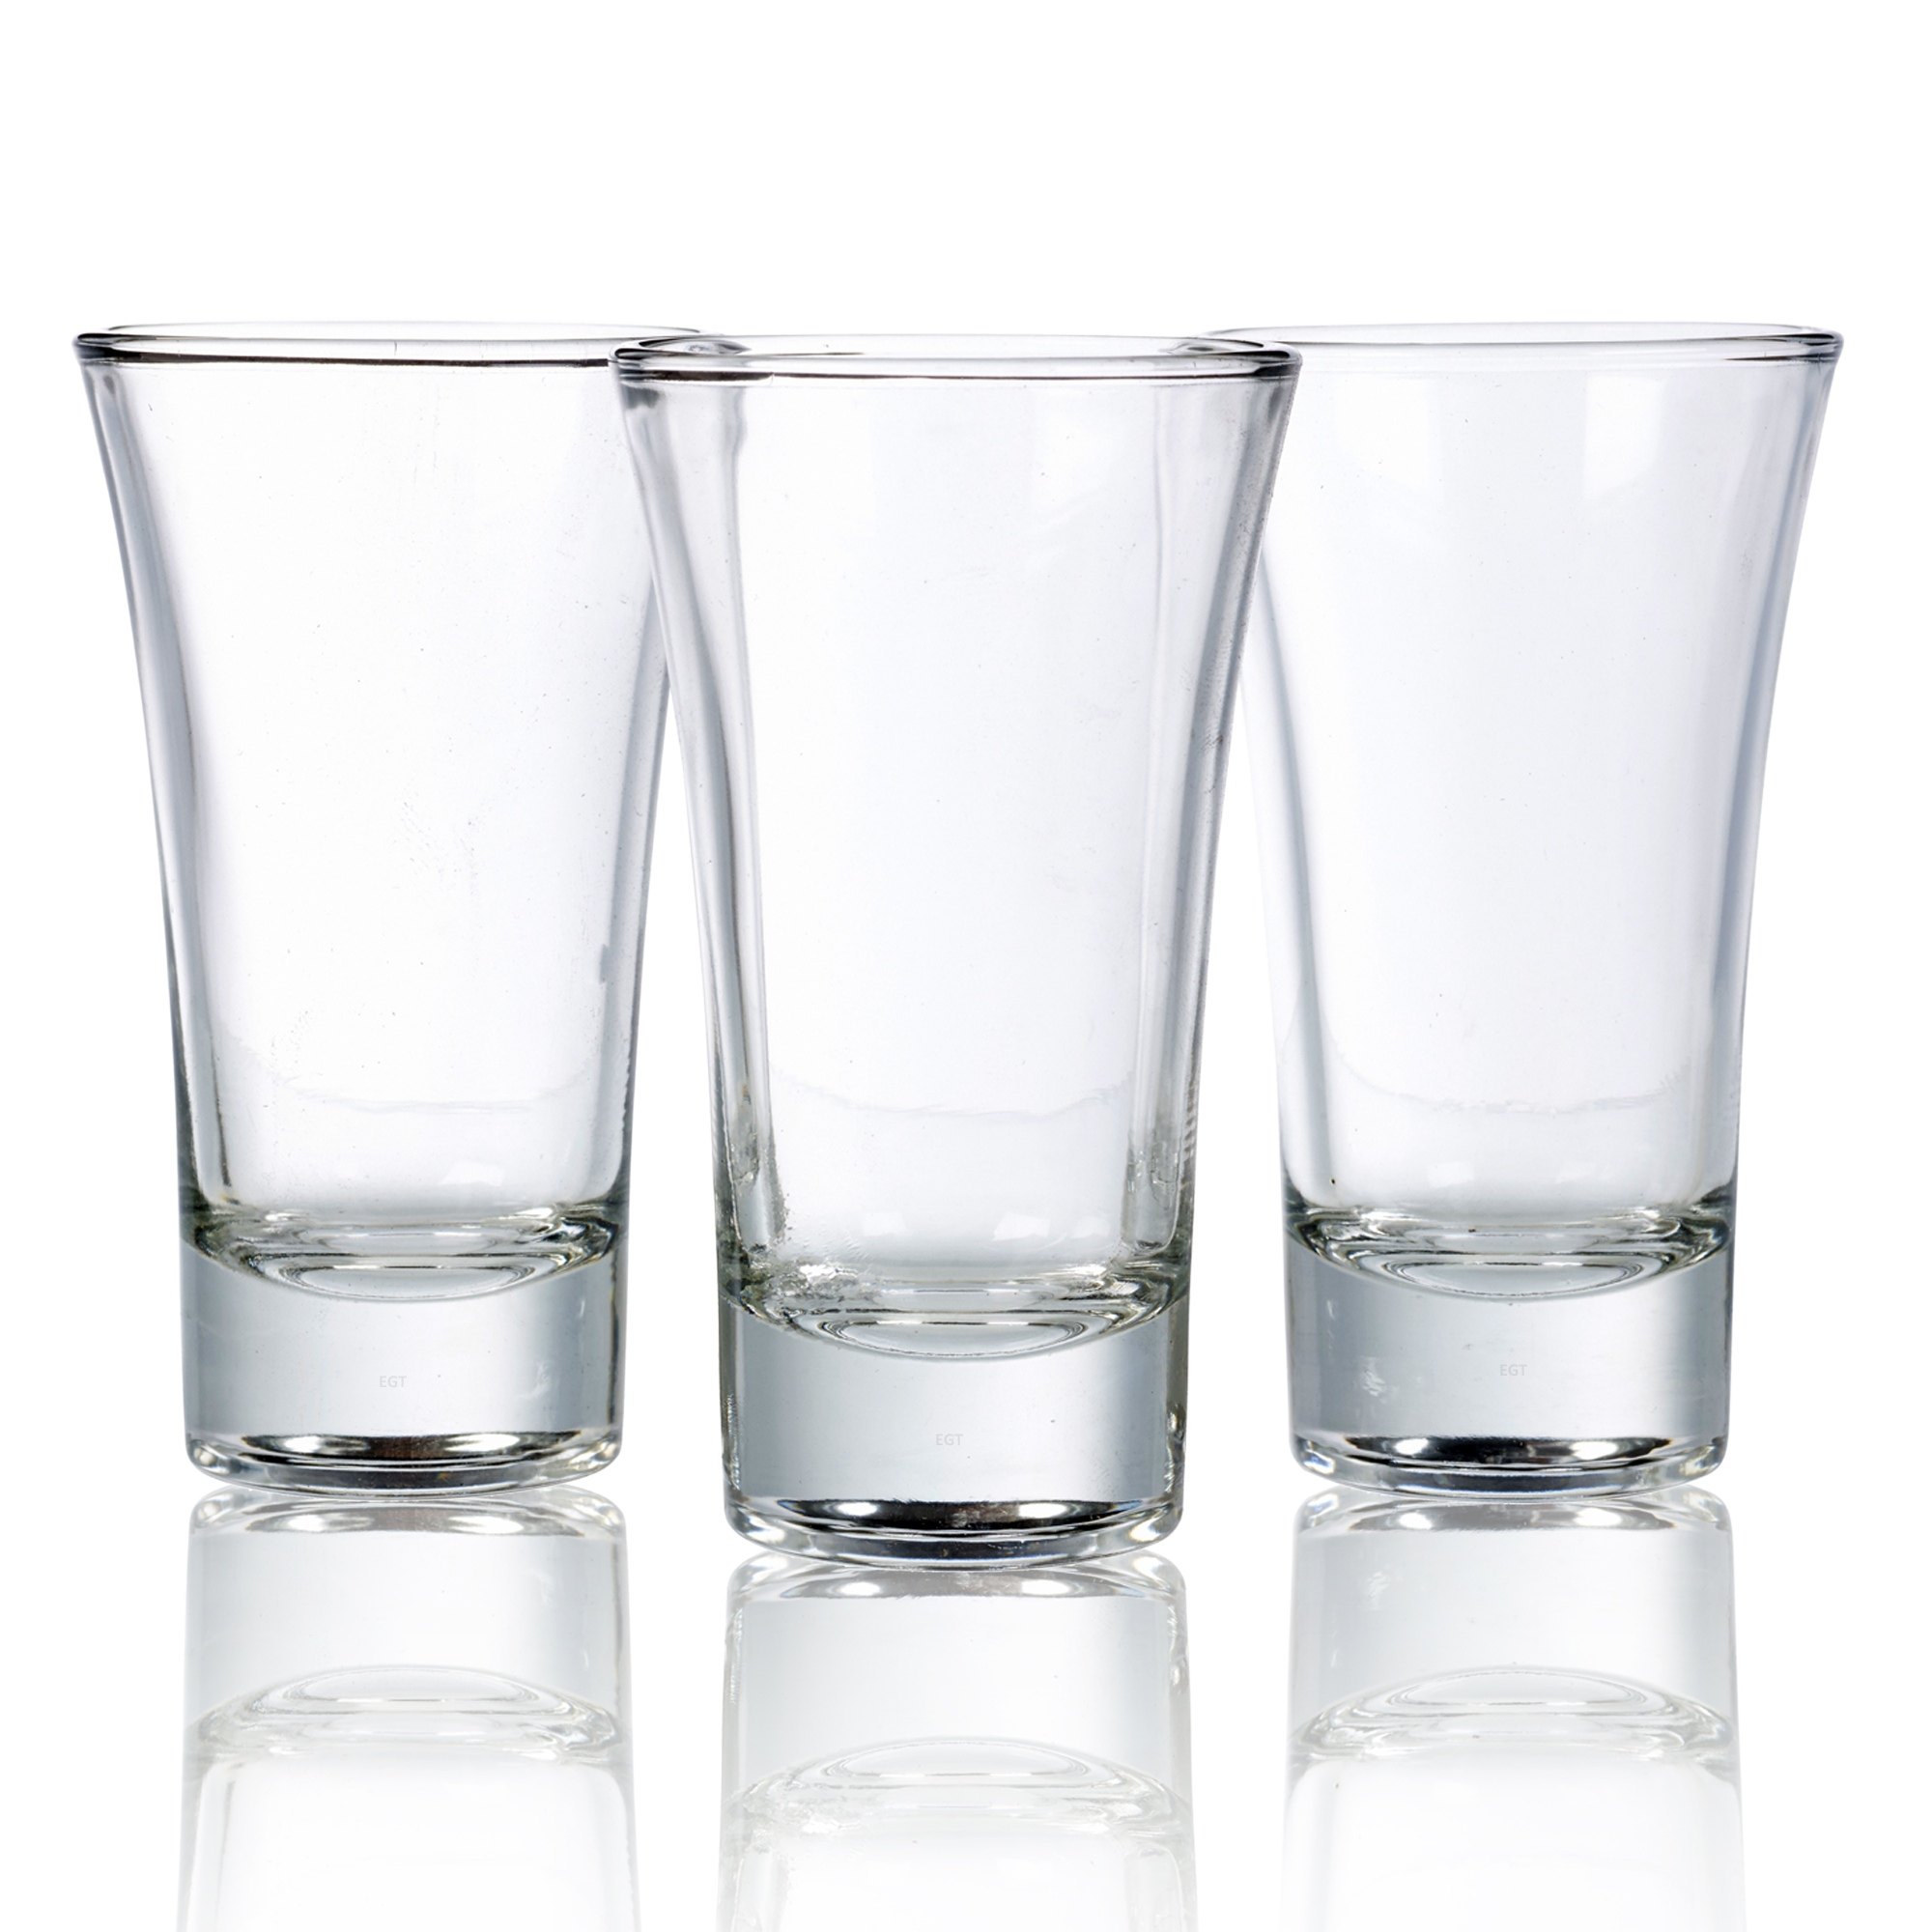 Double Lined Drinking Glasses